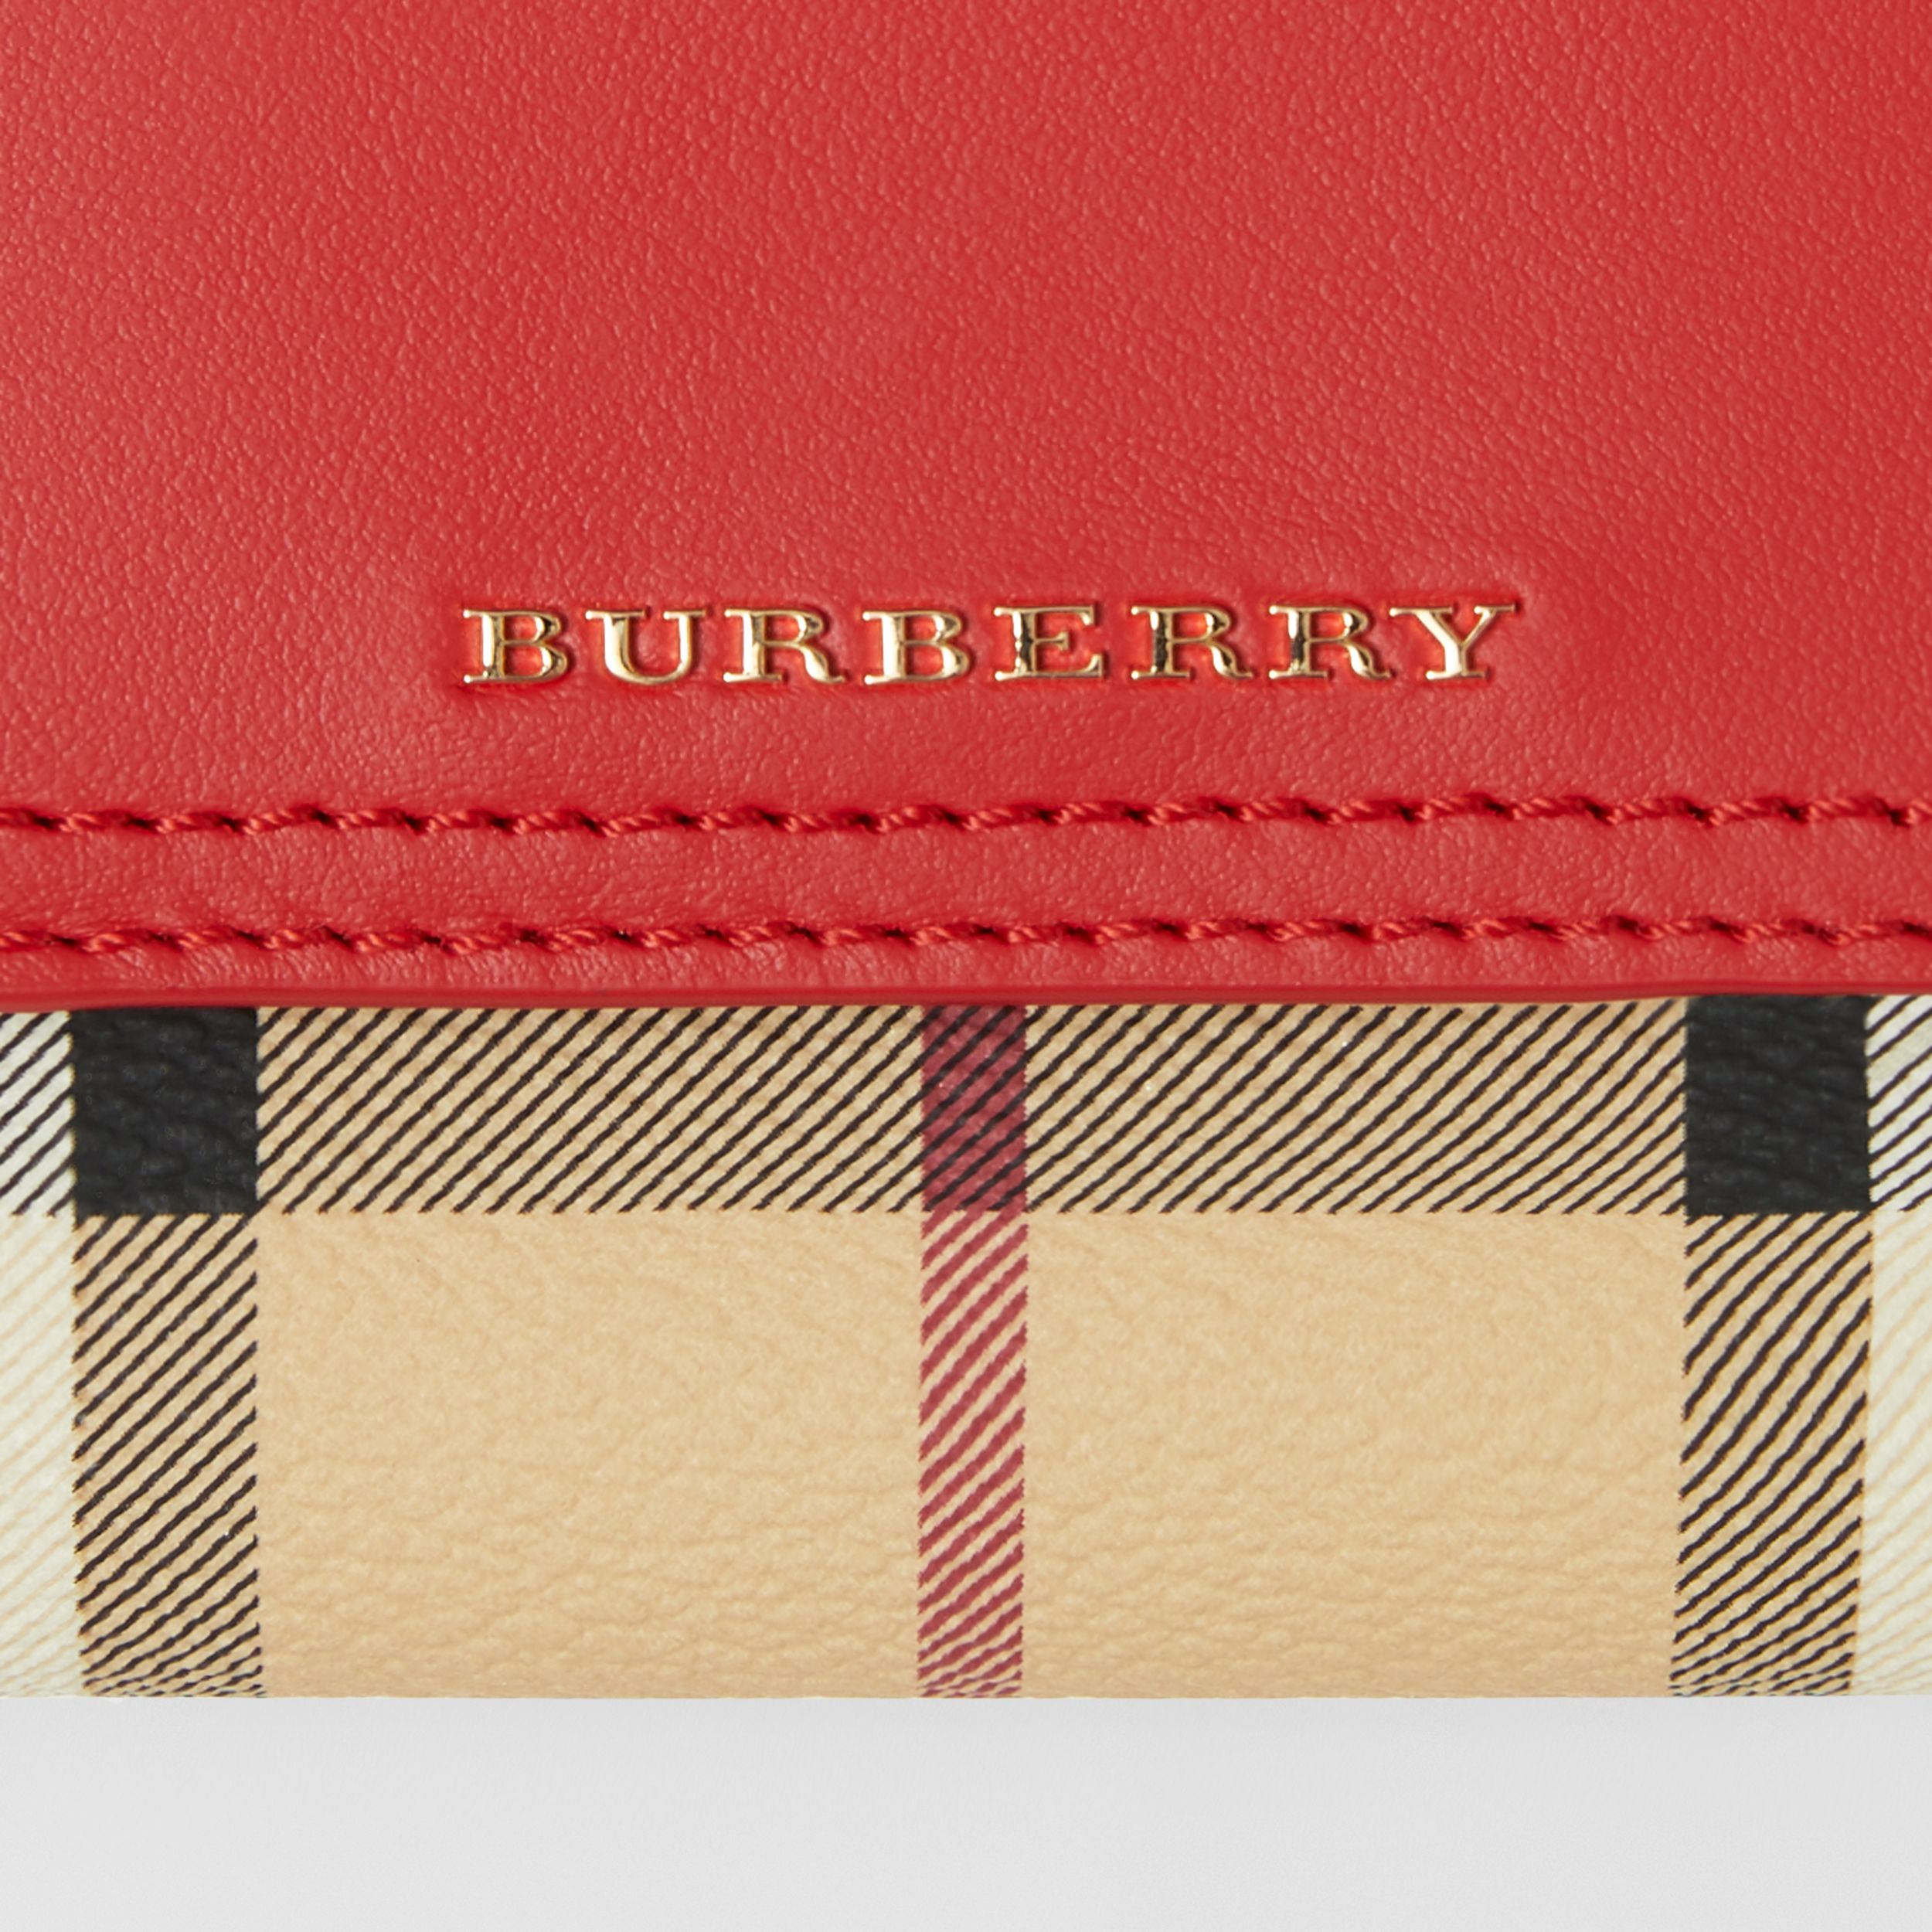 Haymarket Check E-canvas and Leather Wallet in Bright Red - Women | Burberry - 2